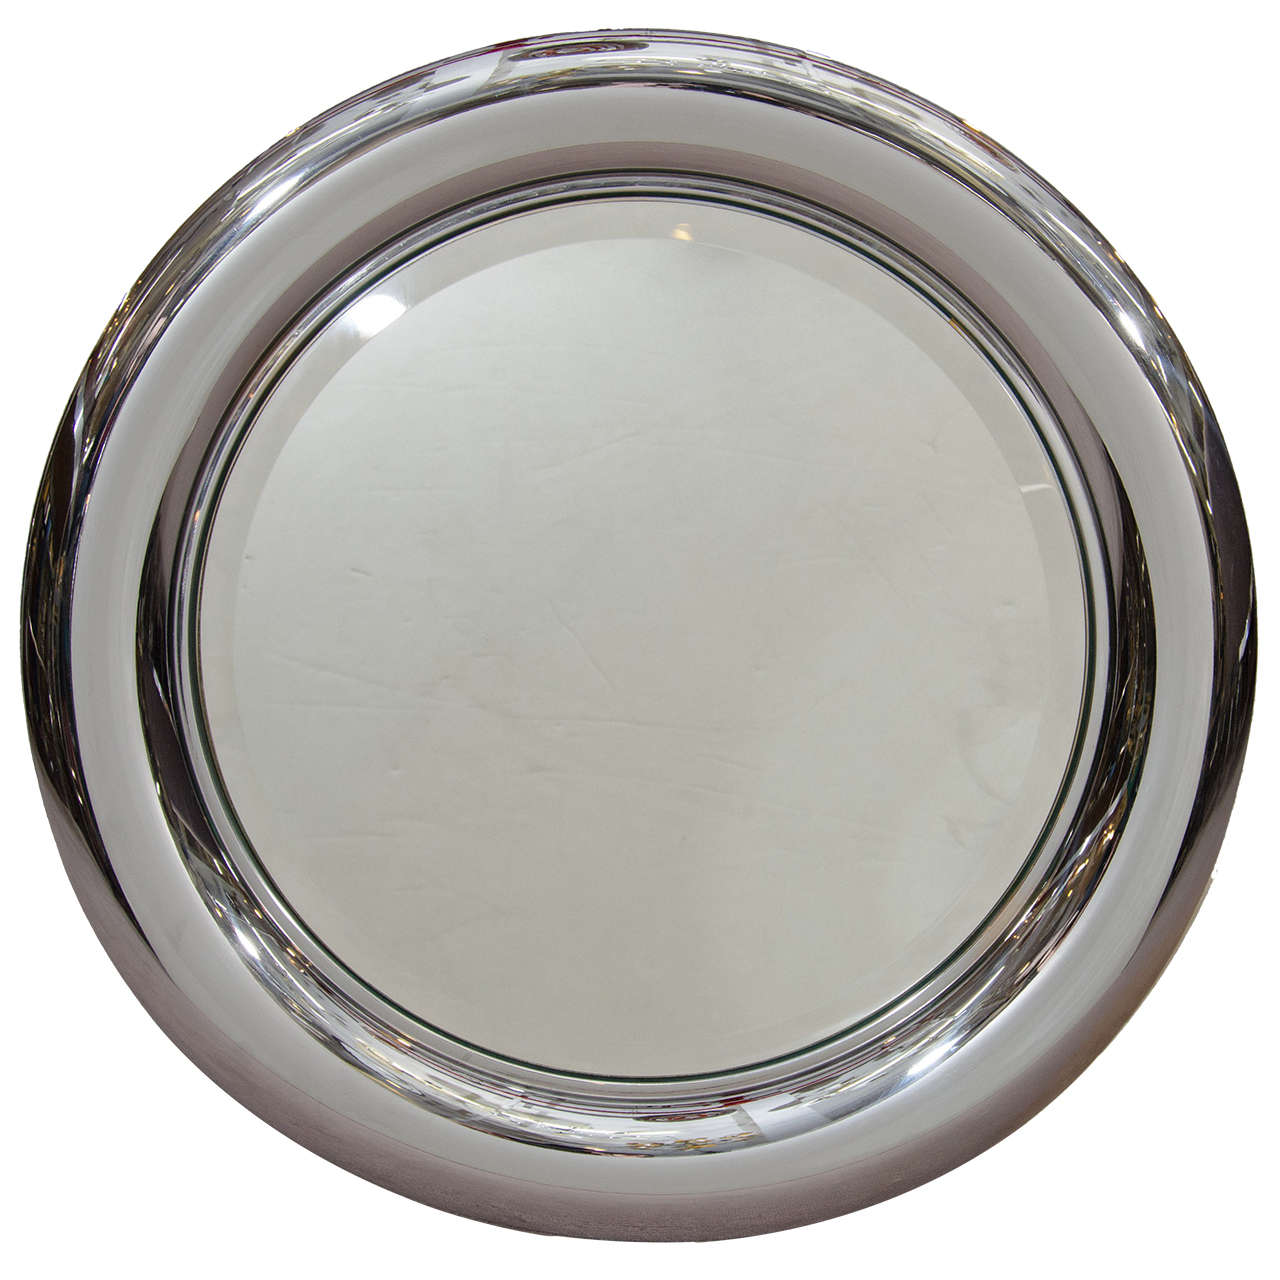 Brilliant 25 chrome framed bathroom mirrors for sale for Mirrors for sale